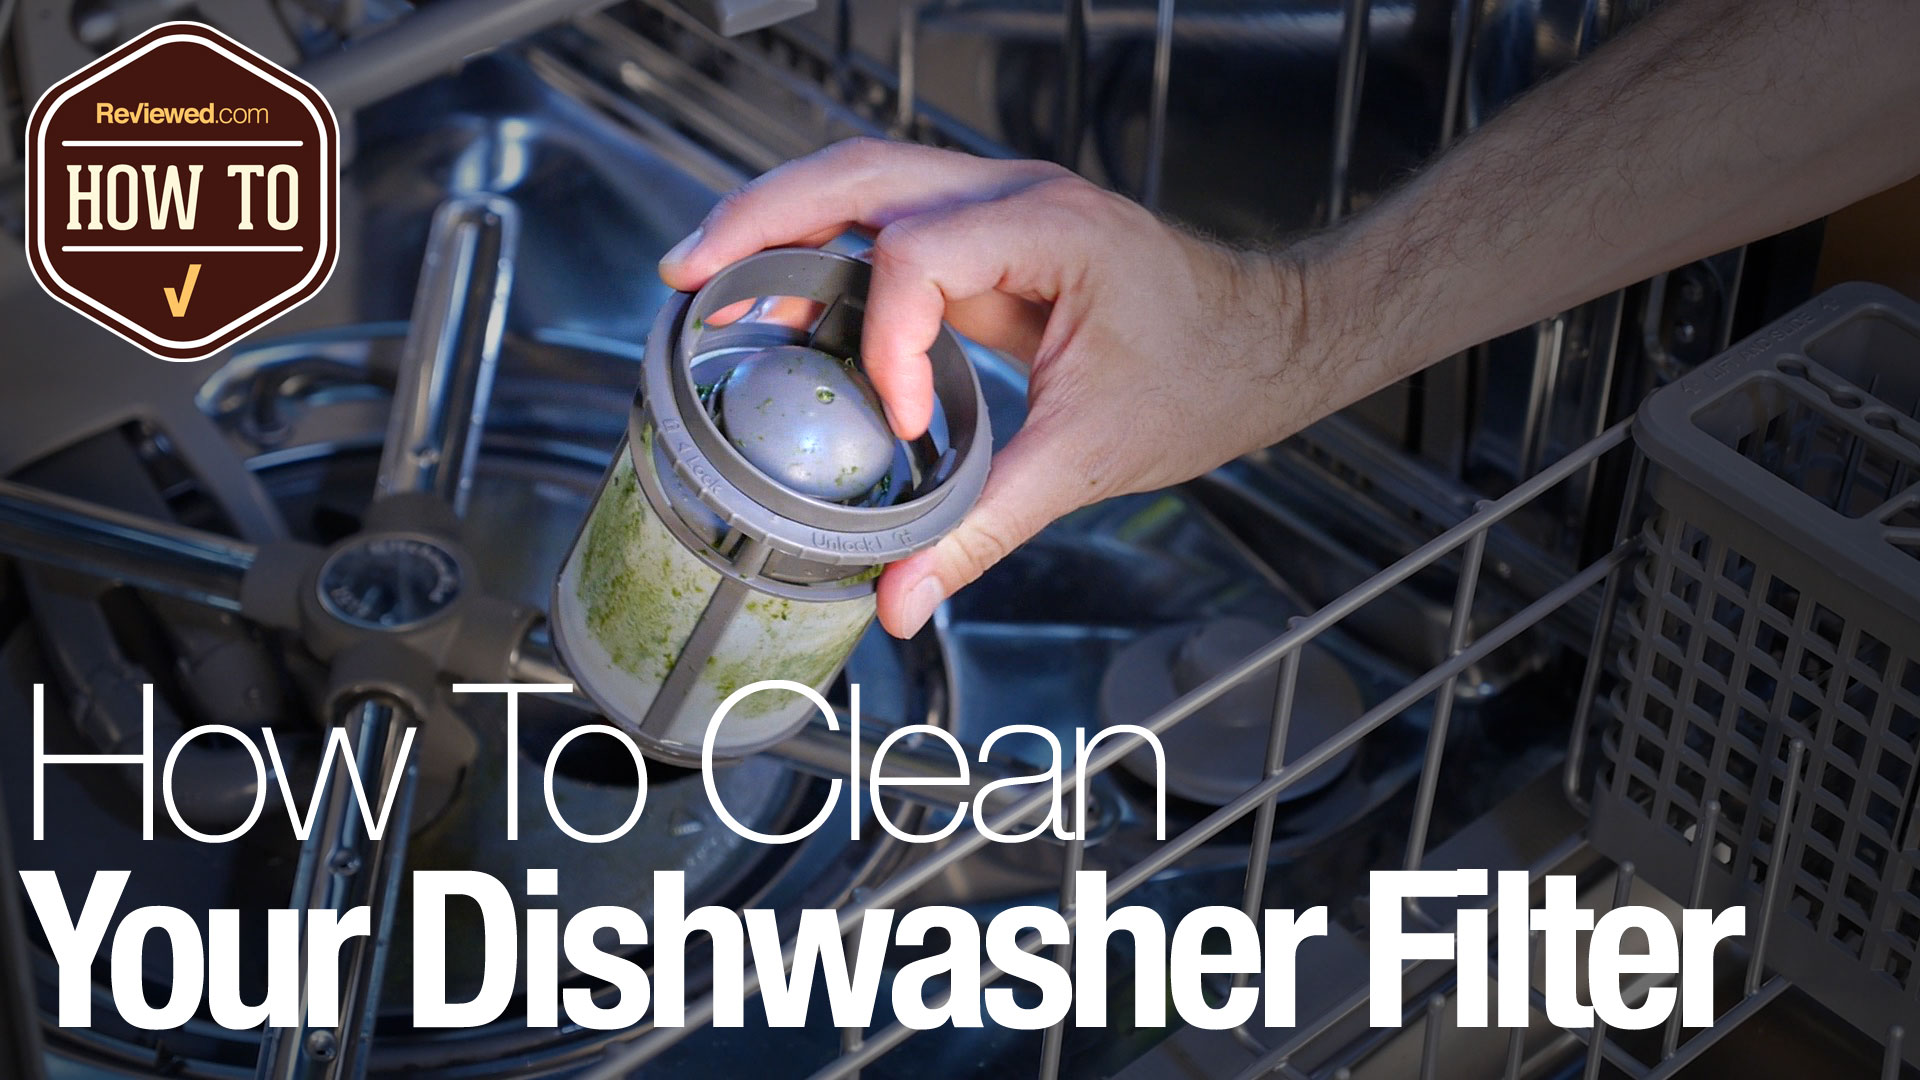 everything you need to know about dishwasher cycles reviewed com dishwashers [ 1920 x 1080 Pixel ]